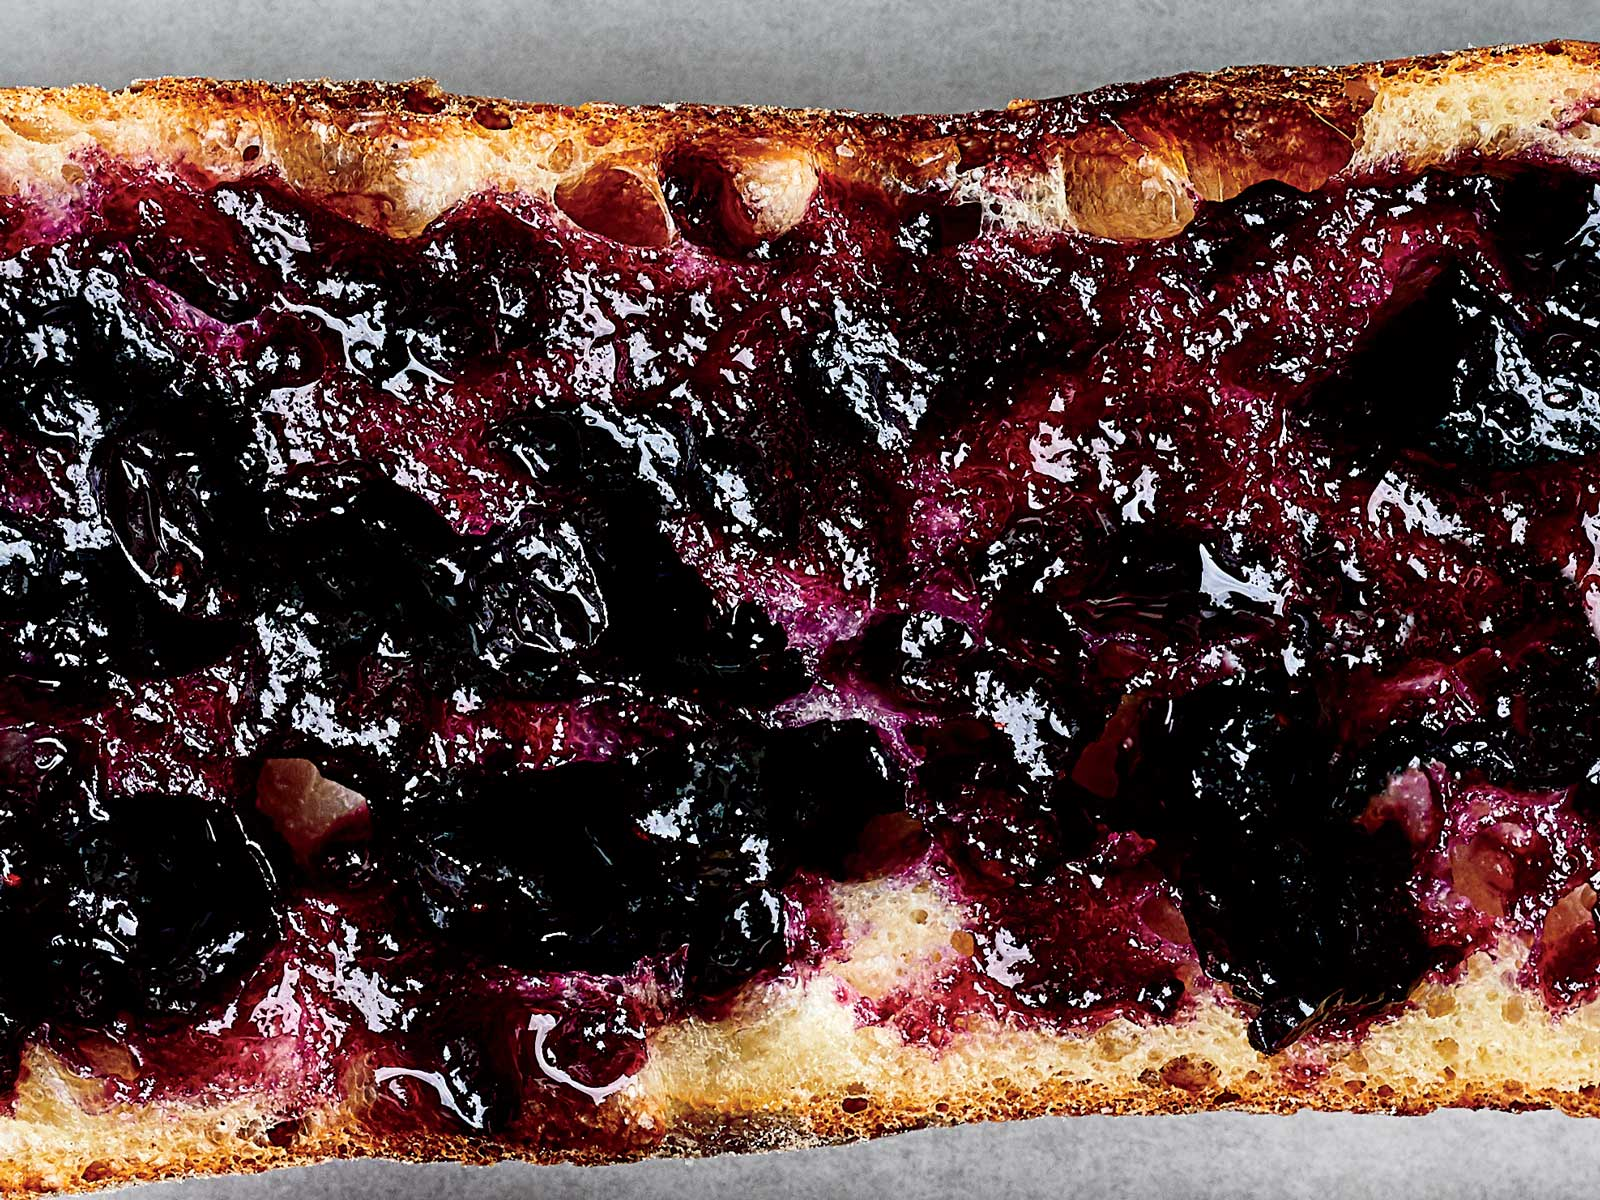 Blueberry-Beaujolais Jam